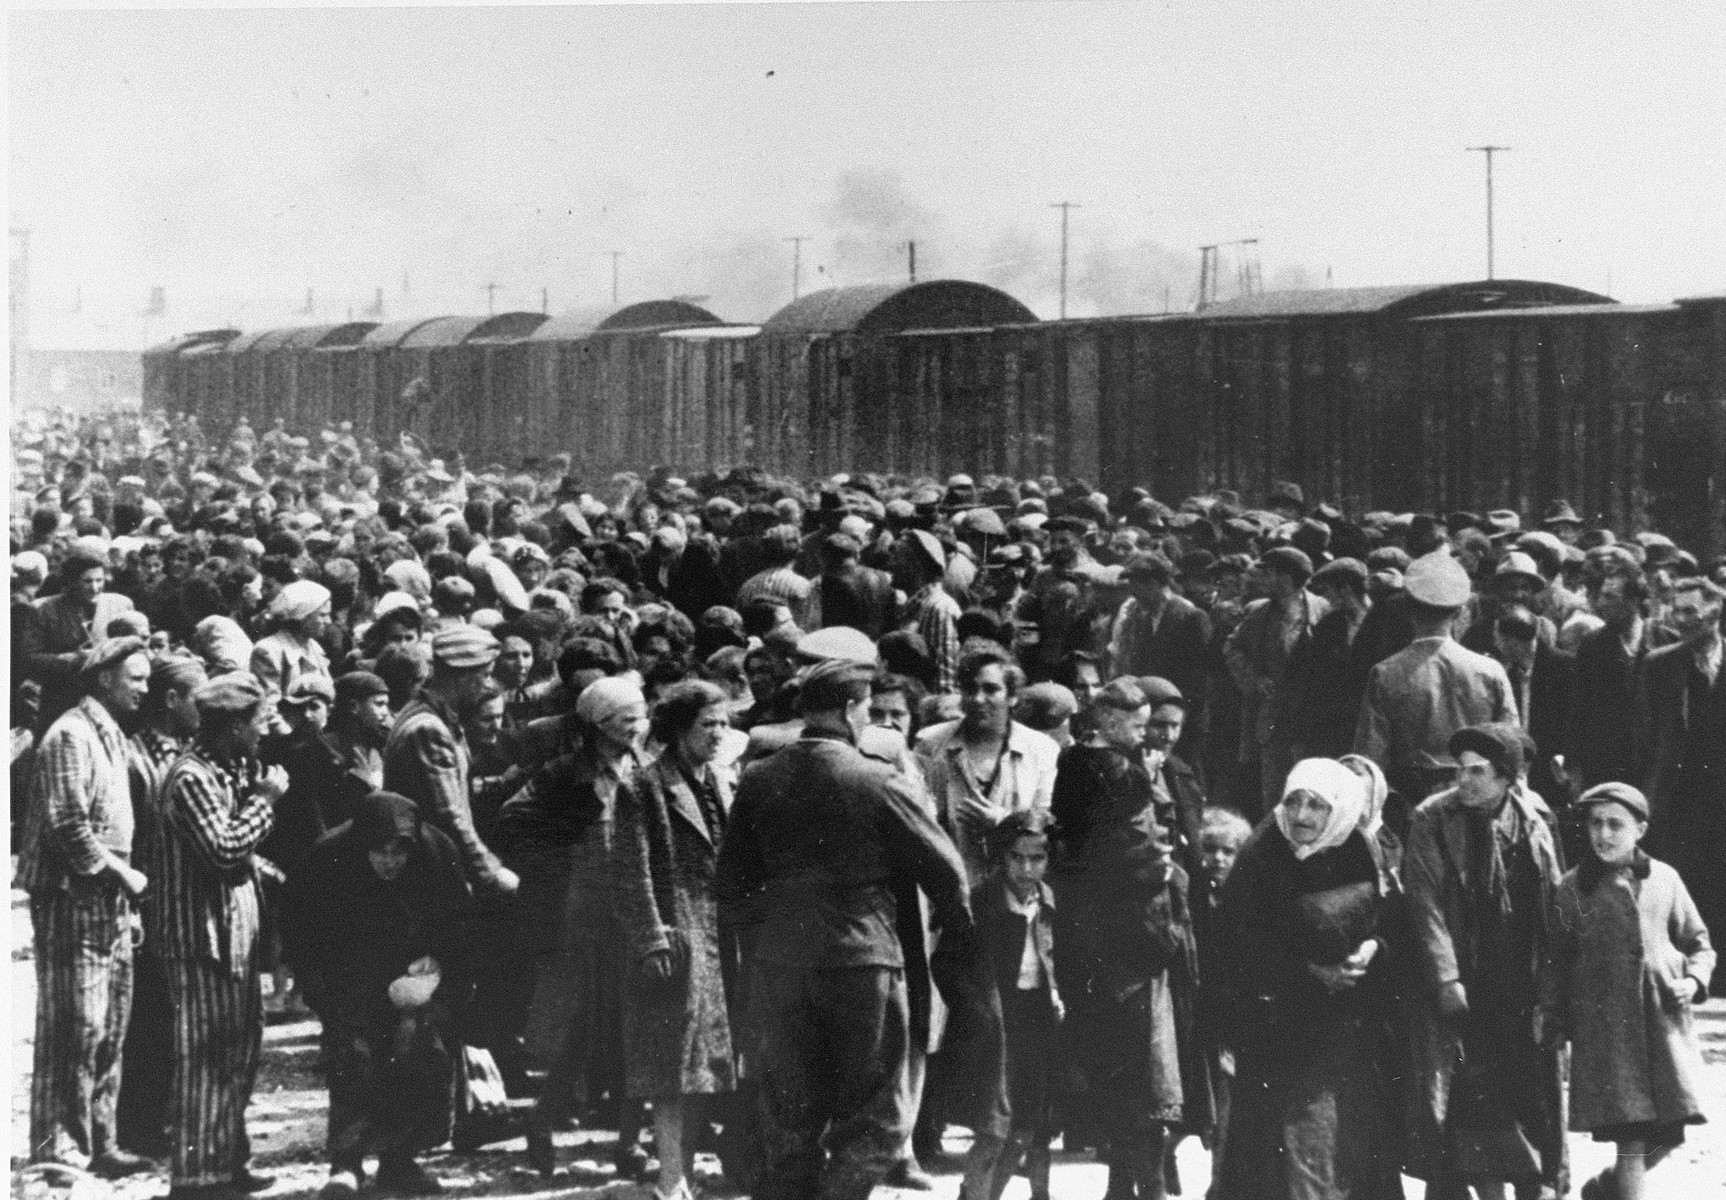 Selection of Jews from Subcarpathian Rus on the ramp at Auschwitz-Birkenau.    Pictured second from the left, in a striped uniform is Eddy Wynschenk.  See hard copy of worksheet for further identifications.